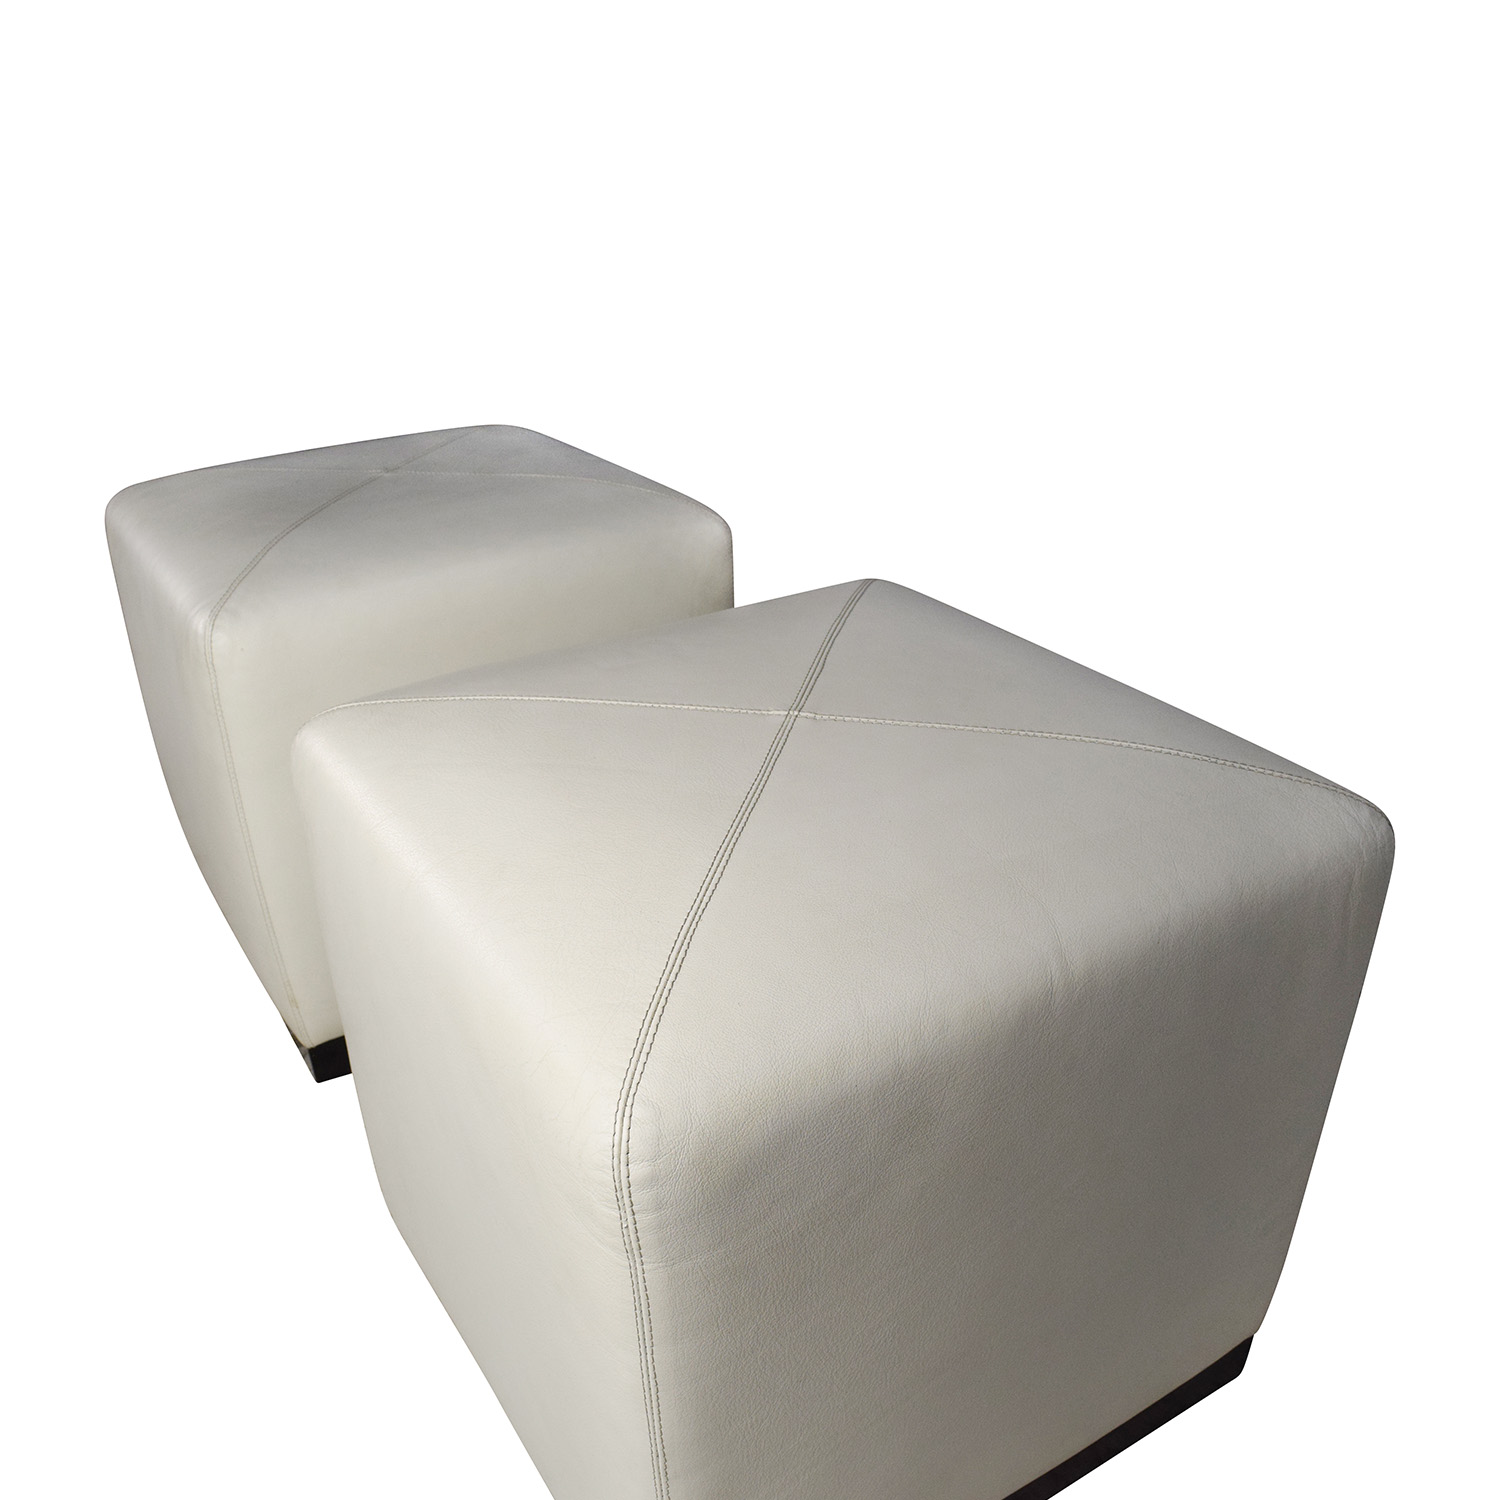 Groovy White Leather Tufted Storage Ottoman 68 Off Pair Of White Machost Co Dining Chair Design Ideas Machostcouk